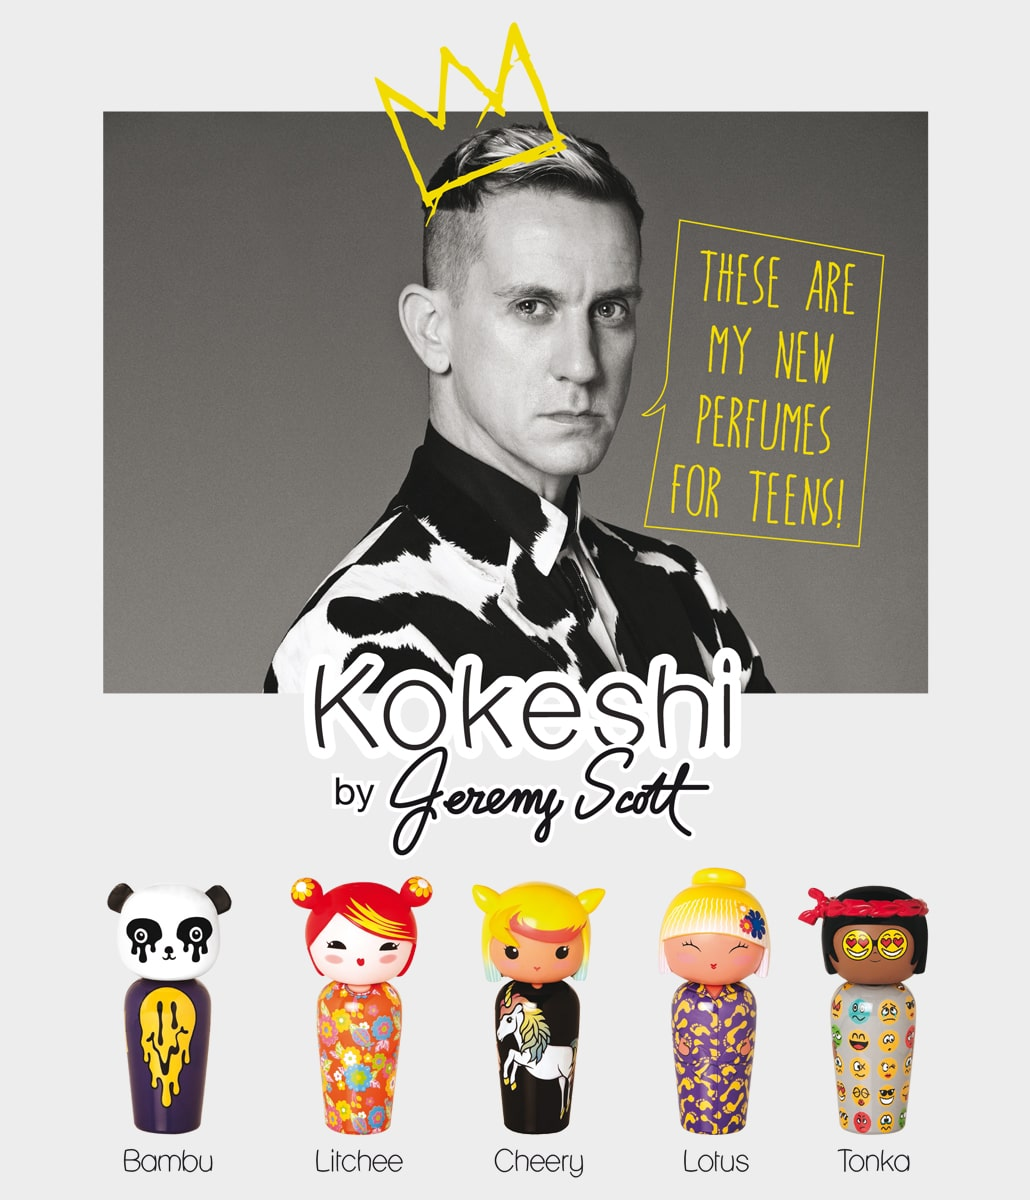 Kokeshi by Jeremy Scott - Marques enfants